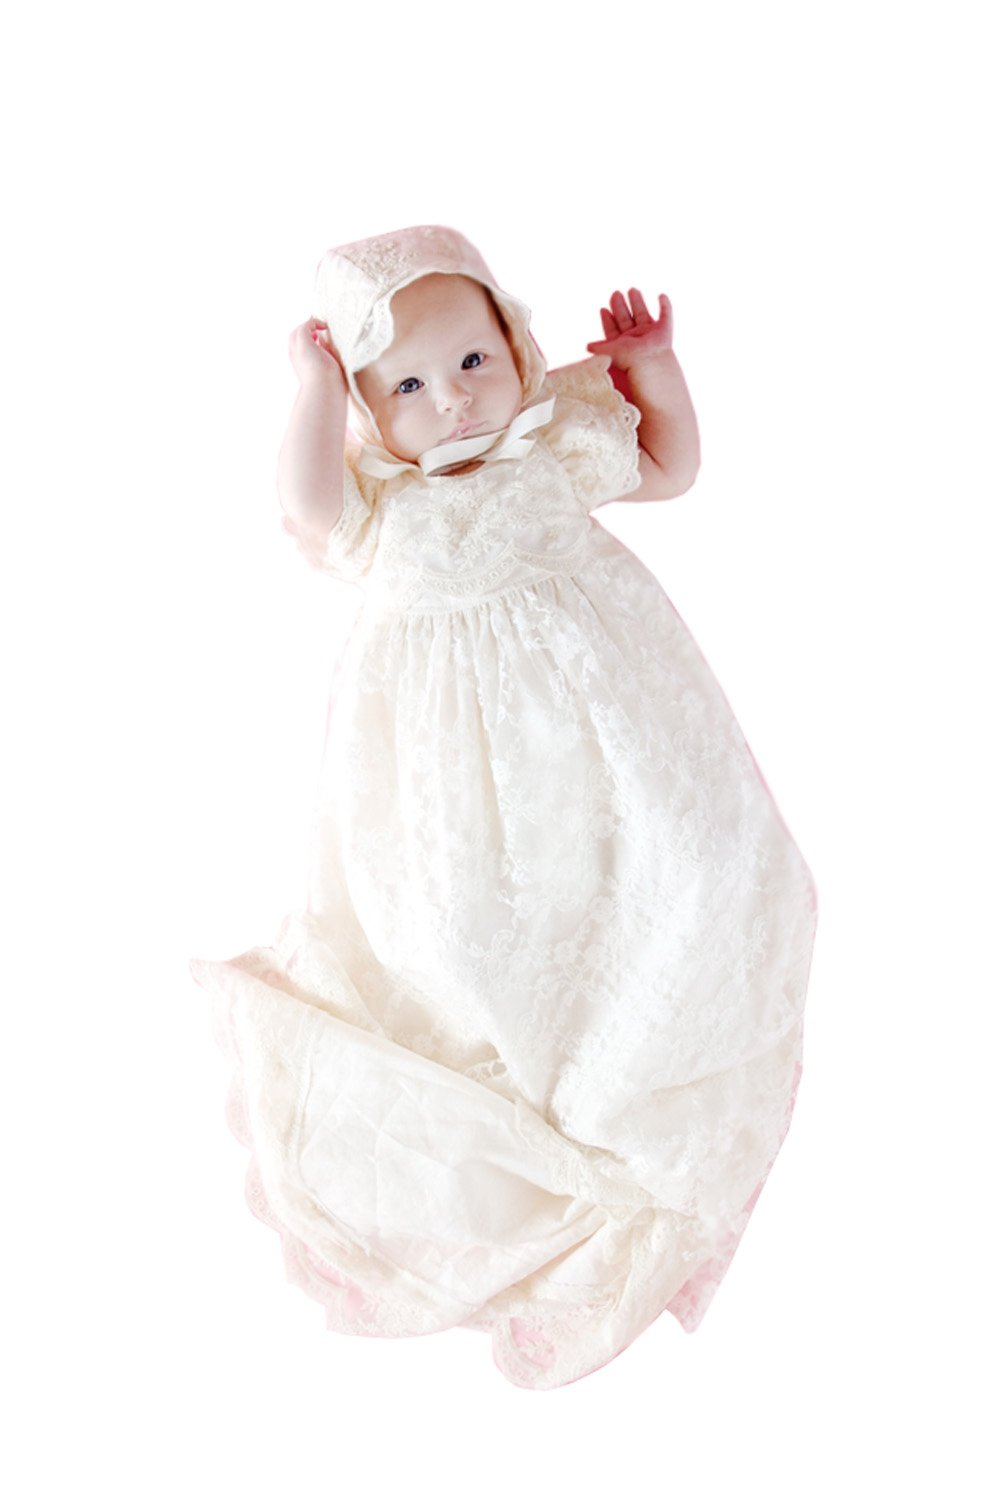 kelaixiang Baby-Girls Newborn Lace Satin Embroidered Dress Gown Outfit